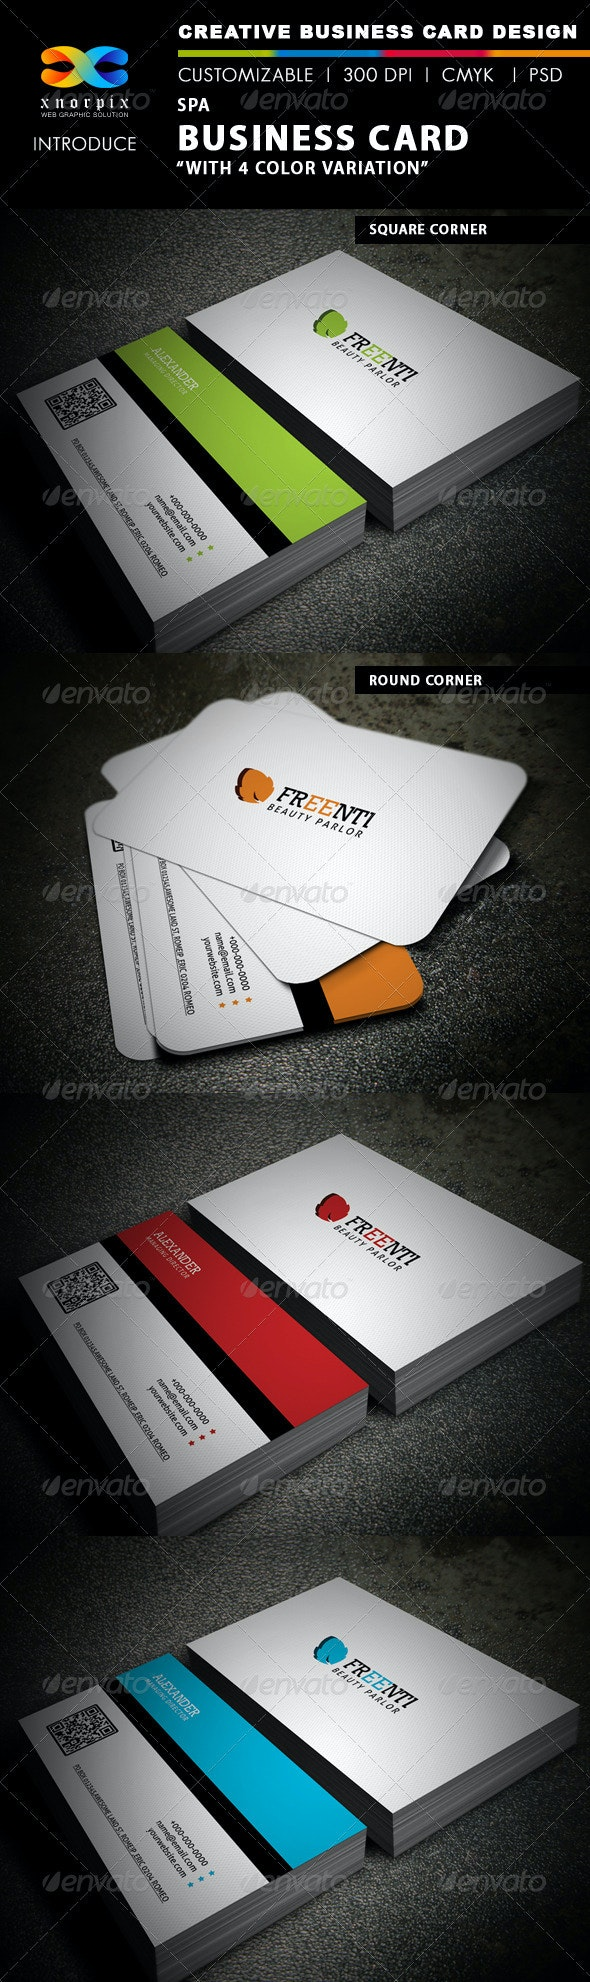 Spa Business Card - Creative Business Cards